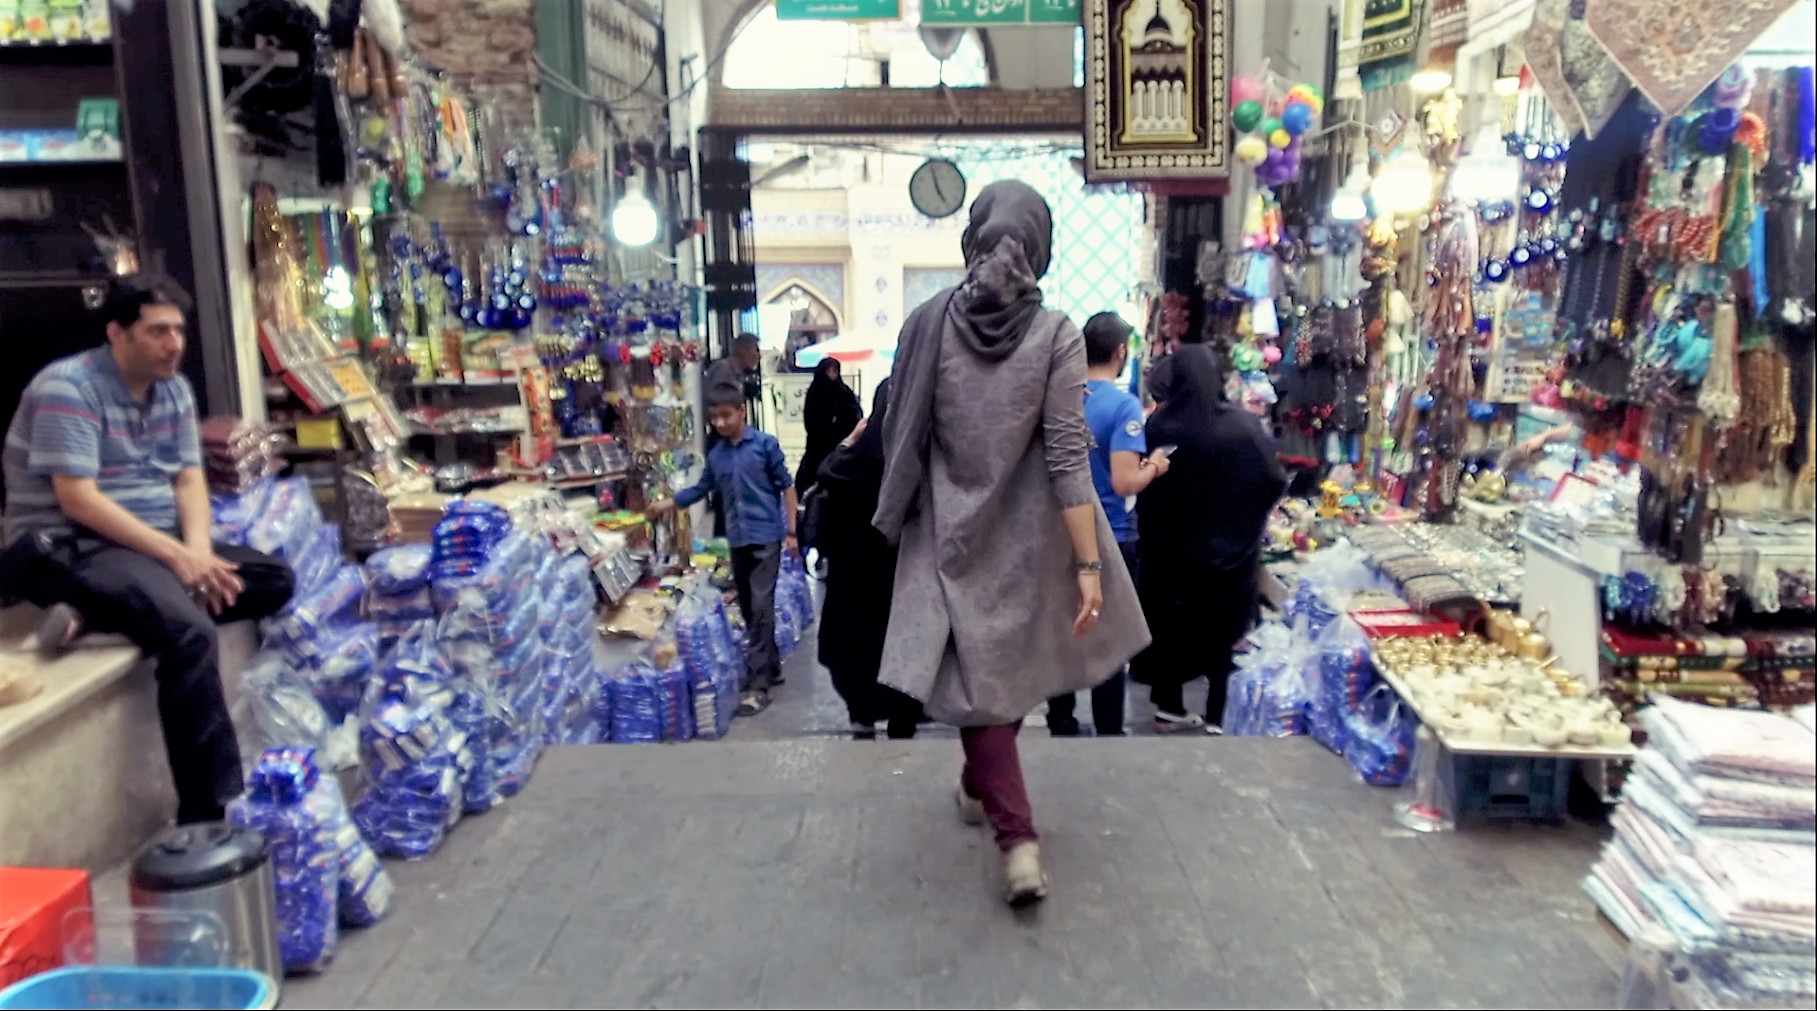 The Derivé - An exploration of social and cultural issues. A dancer moves among the people in an old bazaar in Tehran capturing the responses and reactions. Dance is prohibited in Iran. Directed by Tanin Torabi (طنین ترابی).